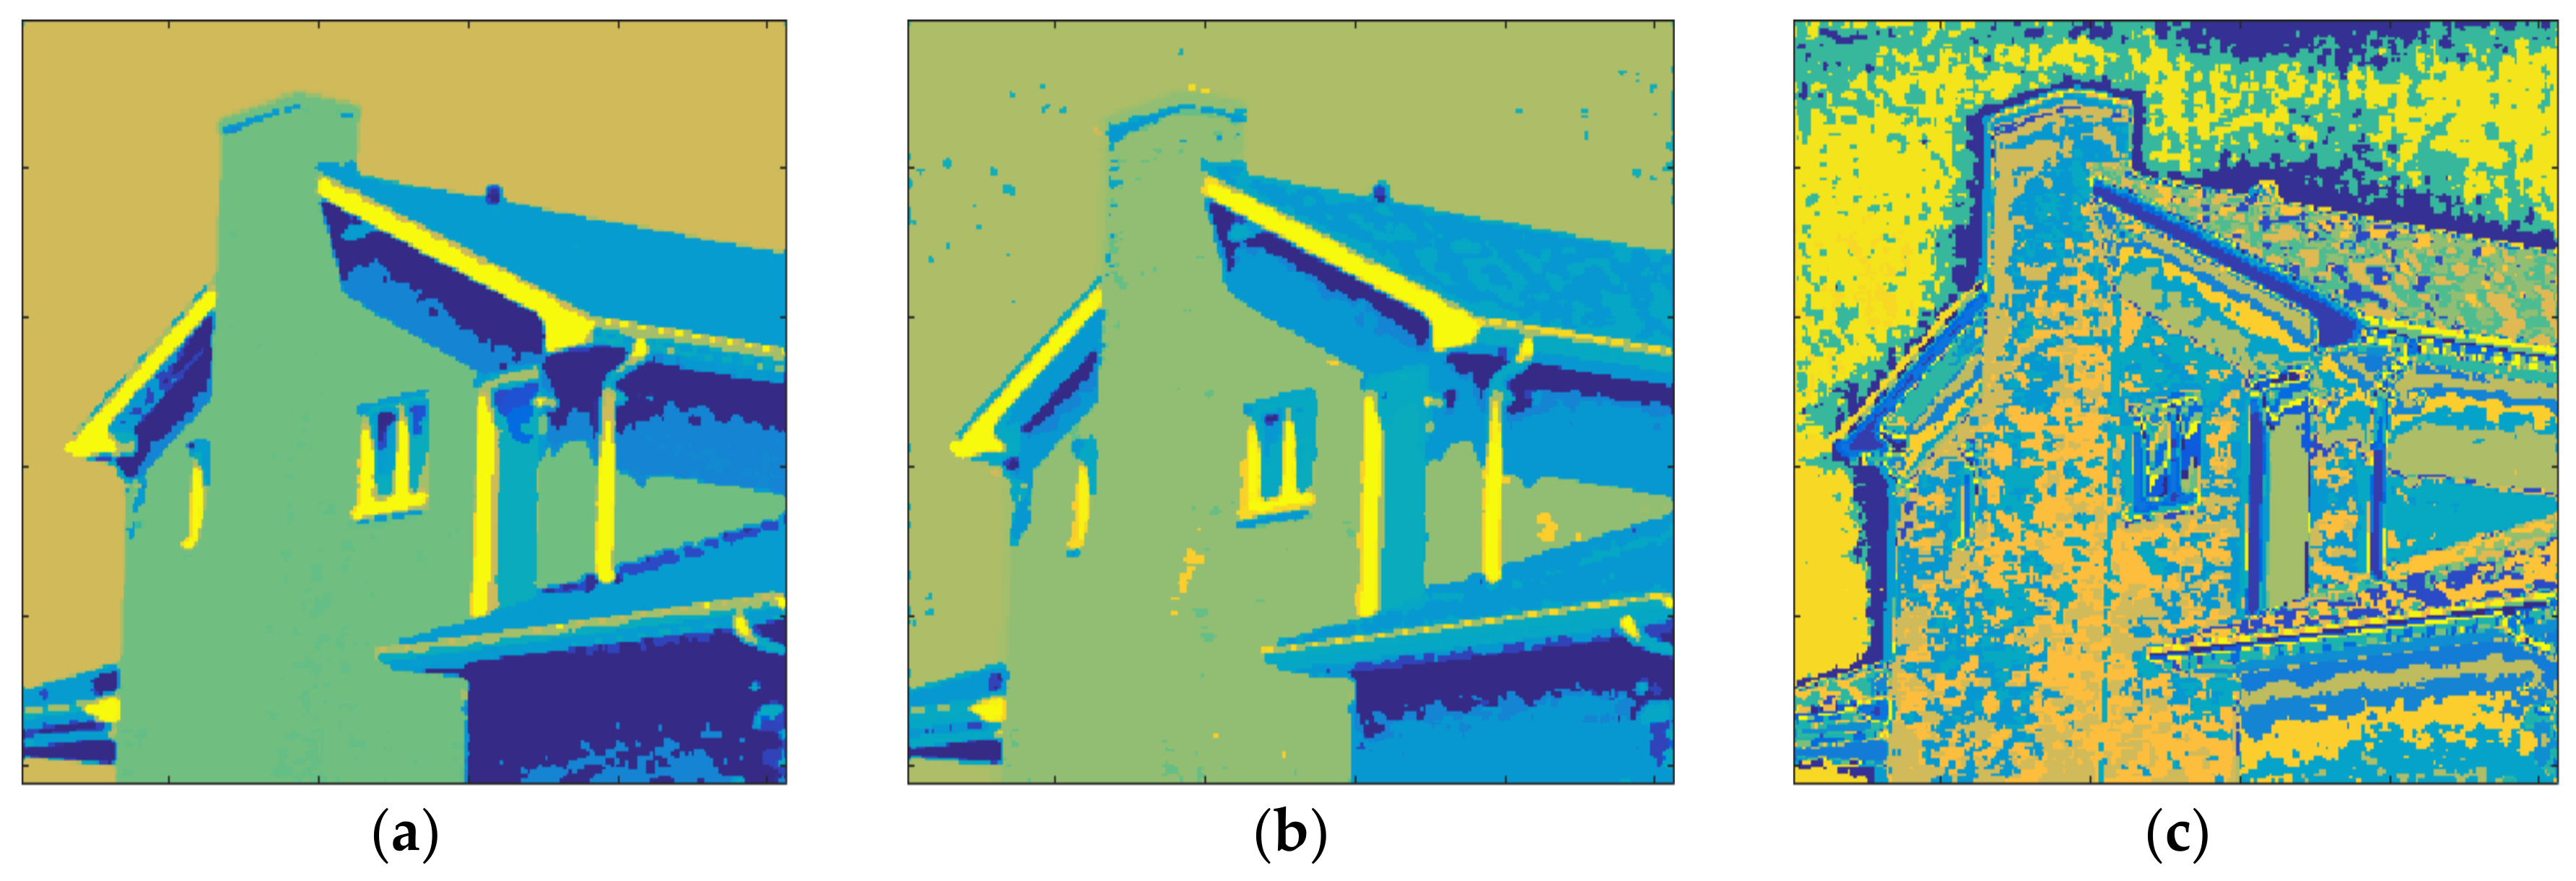 Entropy | Free Full-Text | Image Clustering with Optimization ...